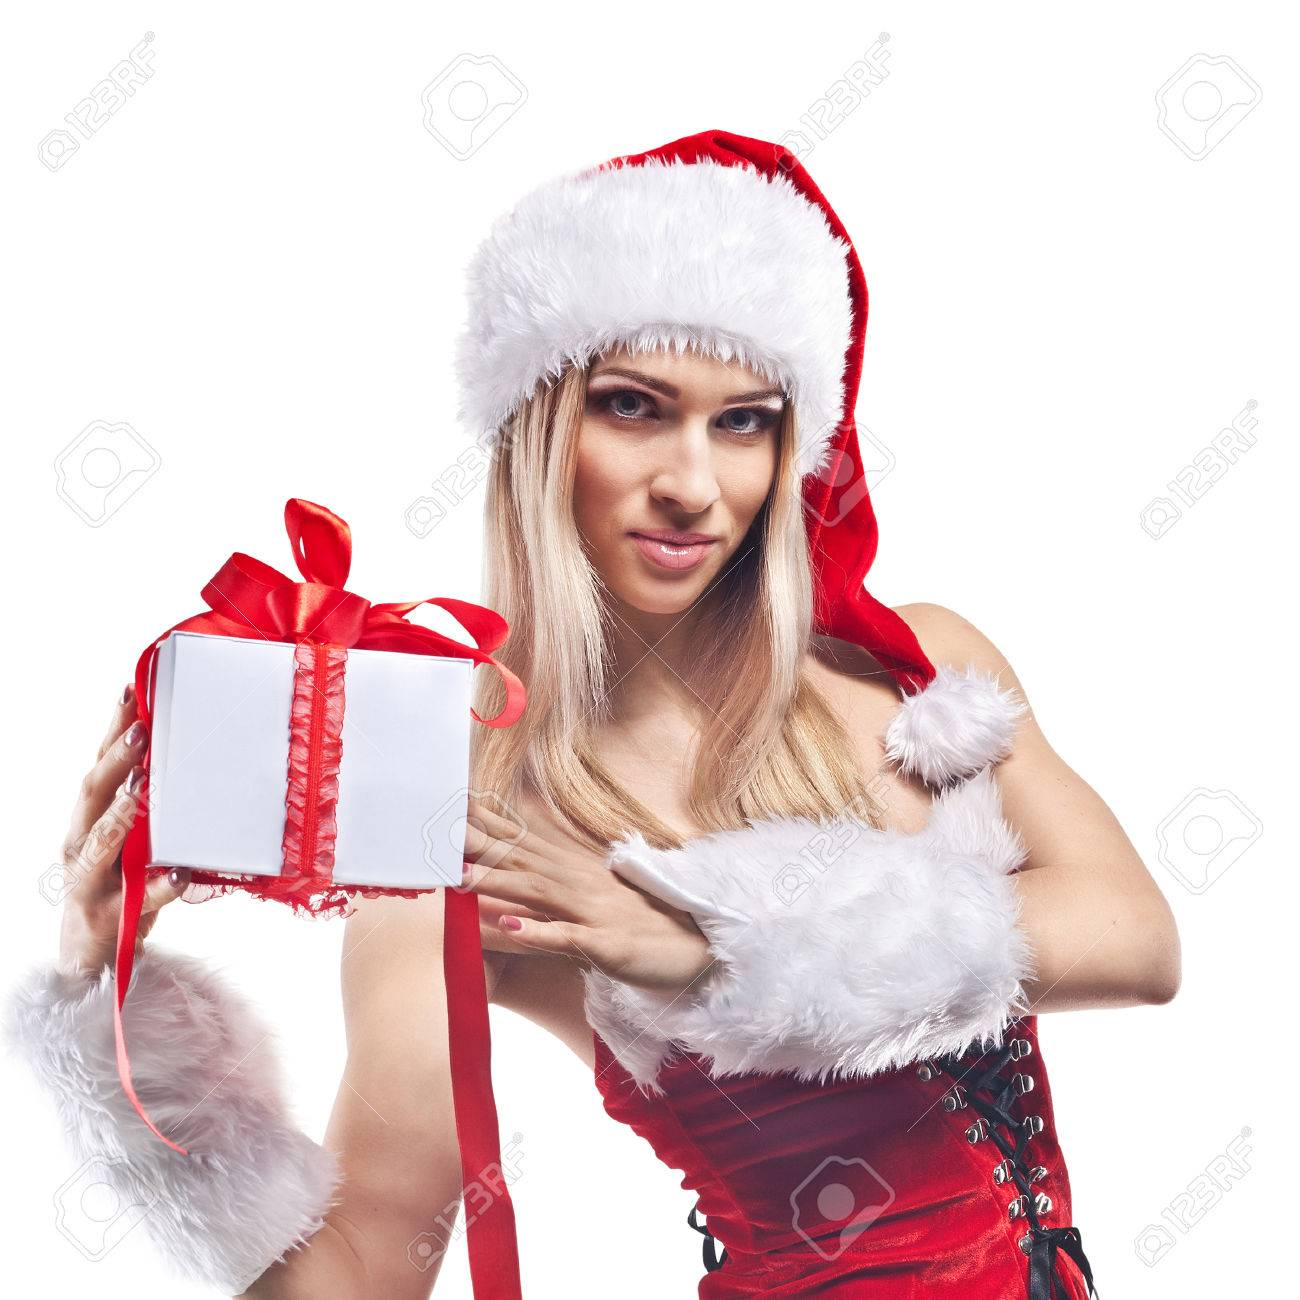 Beautiful woman in Santa Clause costume with extra long blonde hair Winter portrait of sexy girl  sc 1 st  123RF.com & Beautiful Woman In Santa Clause Costume With Extra Long Blonde ...